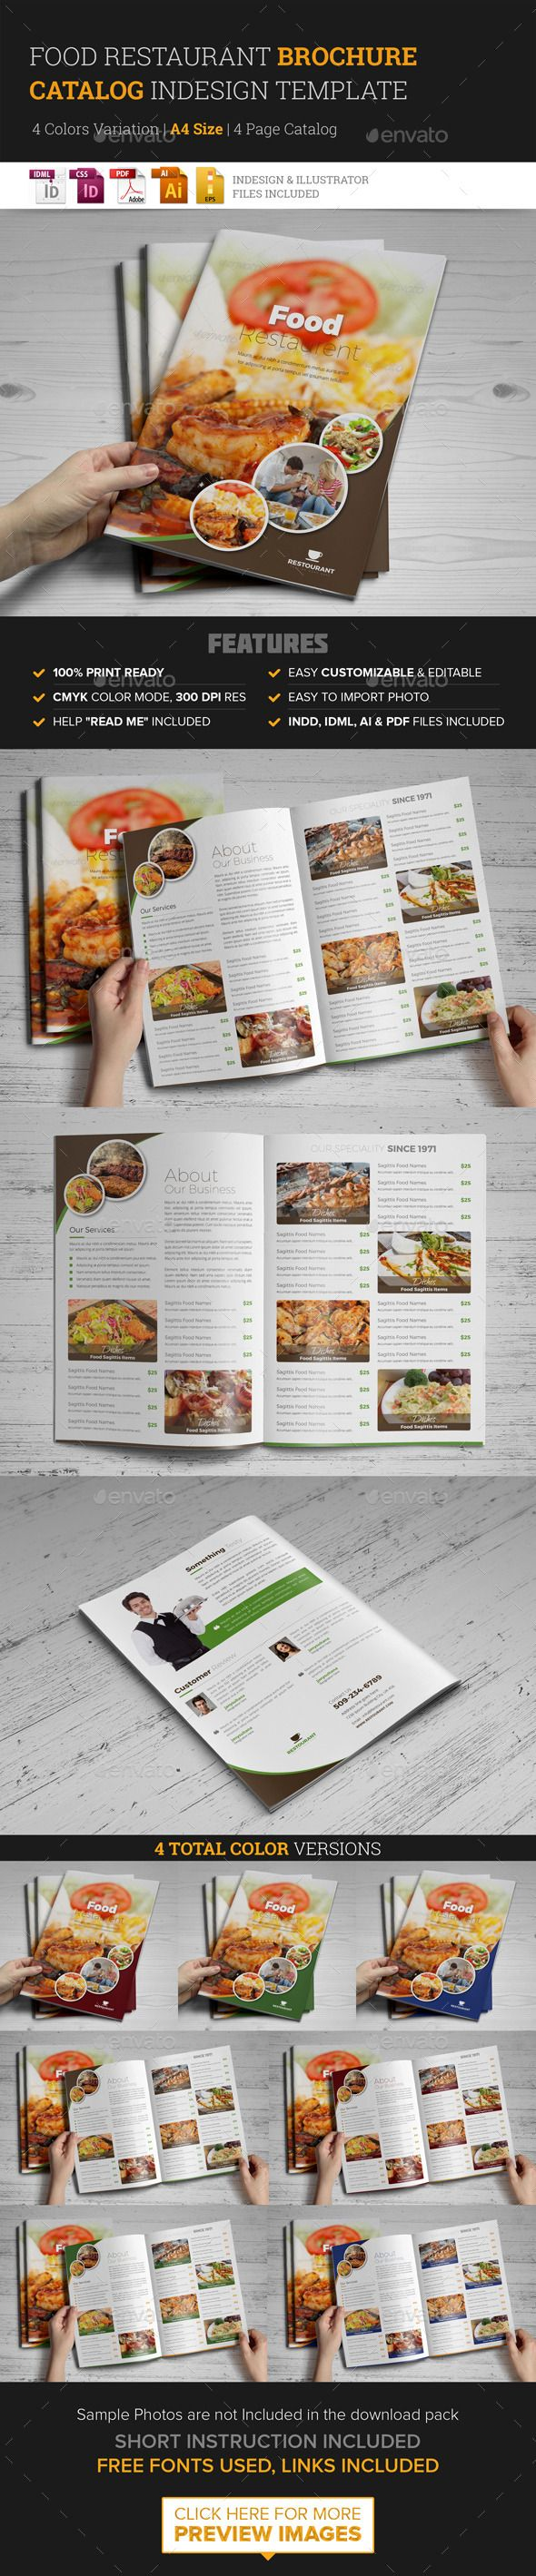 food restaurant bifold brochure indesign template best indesign templates and brochures ideas. Black Bedroom Furniture Sets. Home Design Ideas